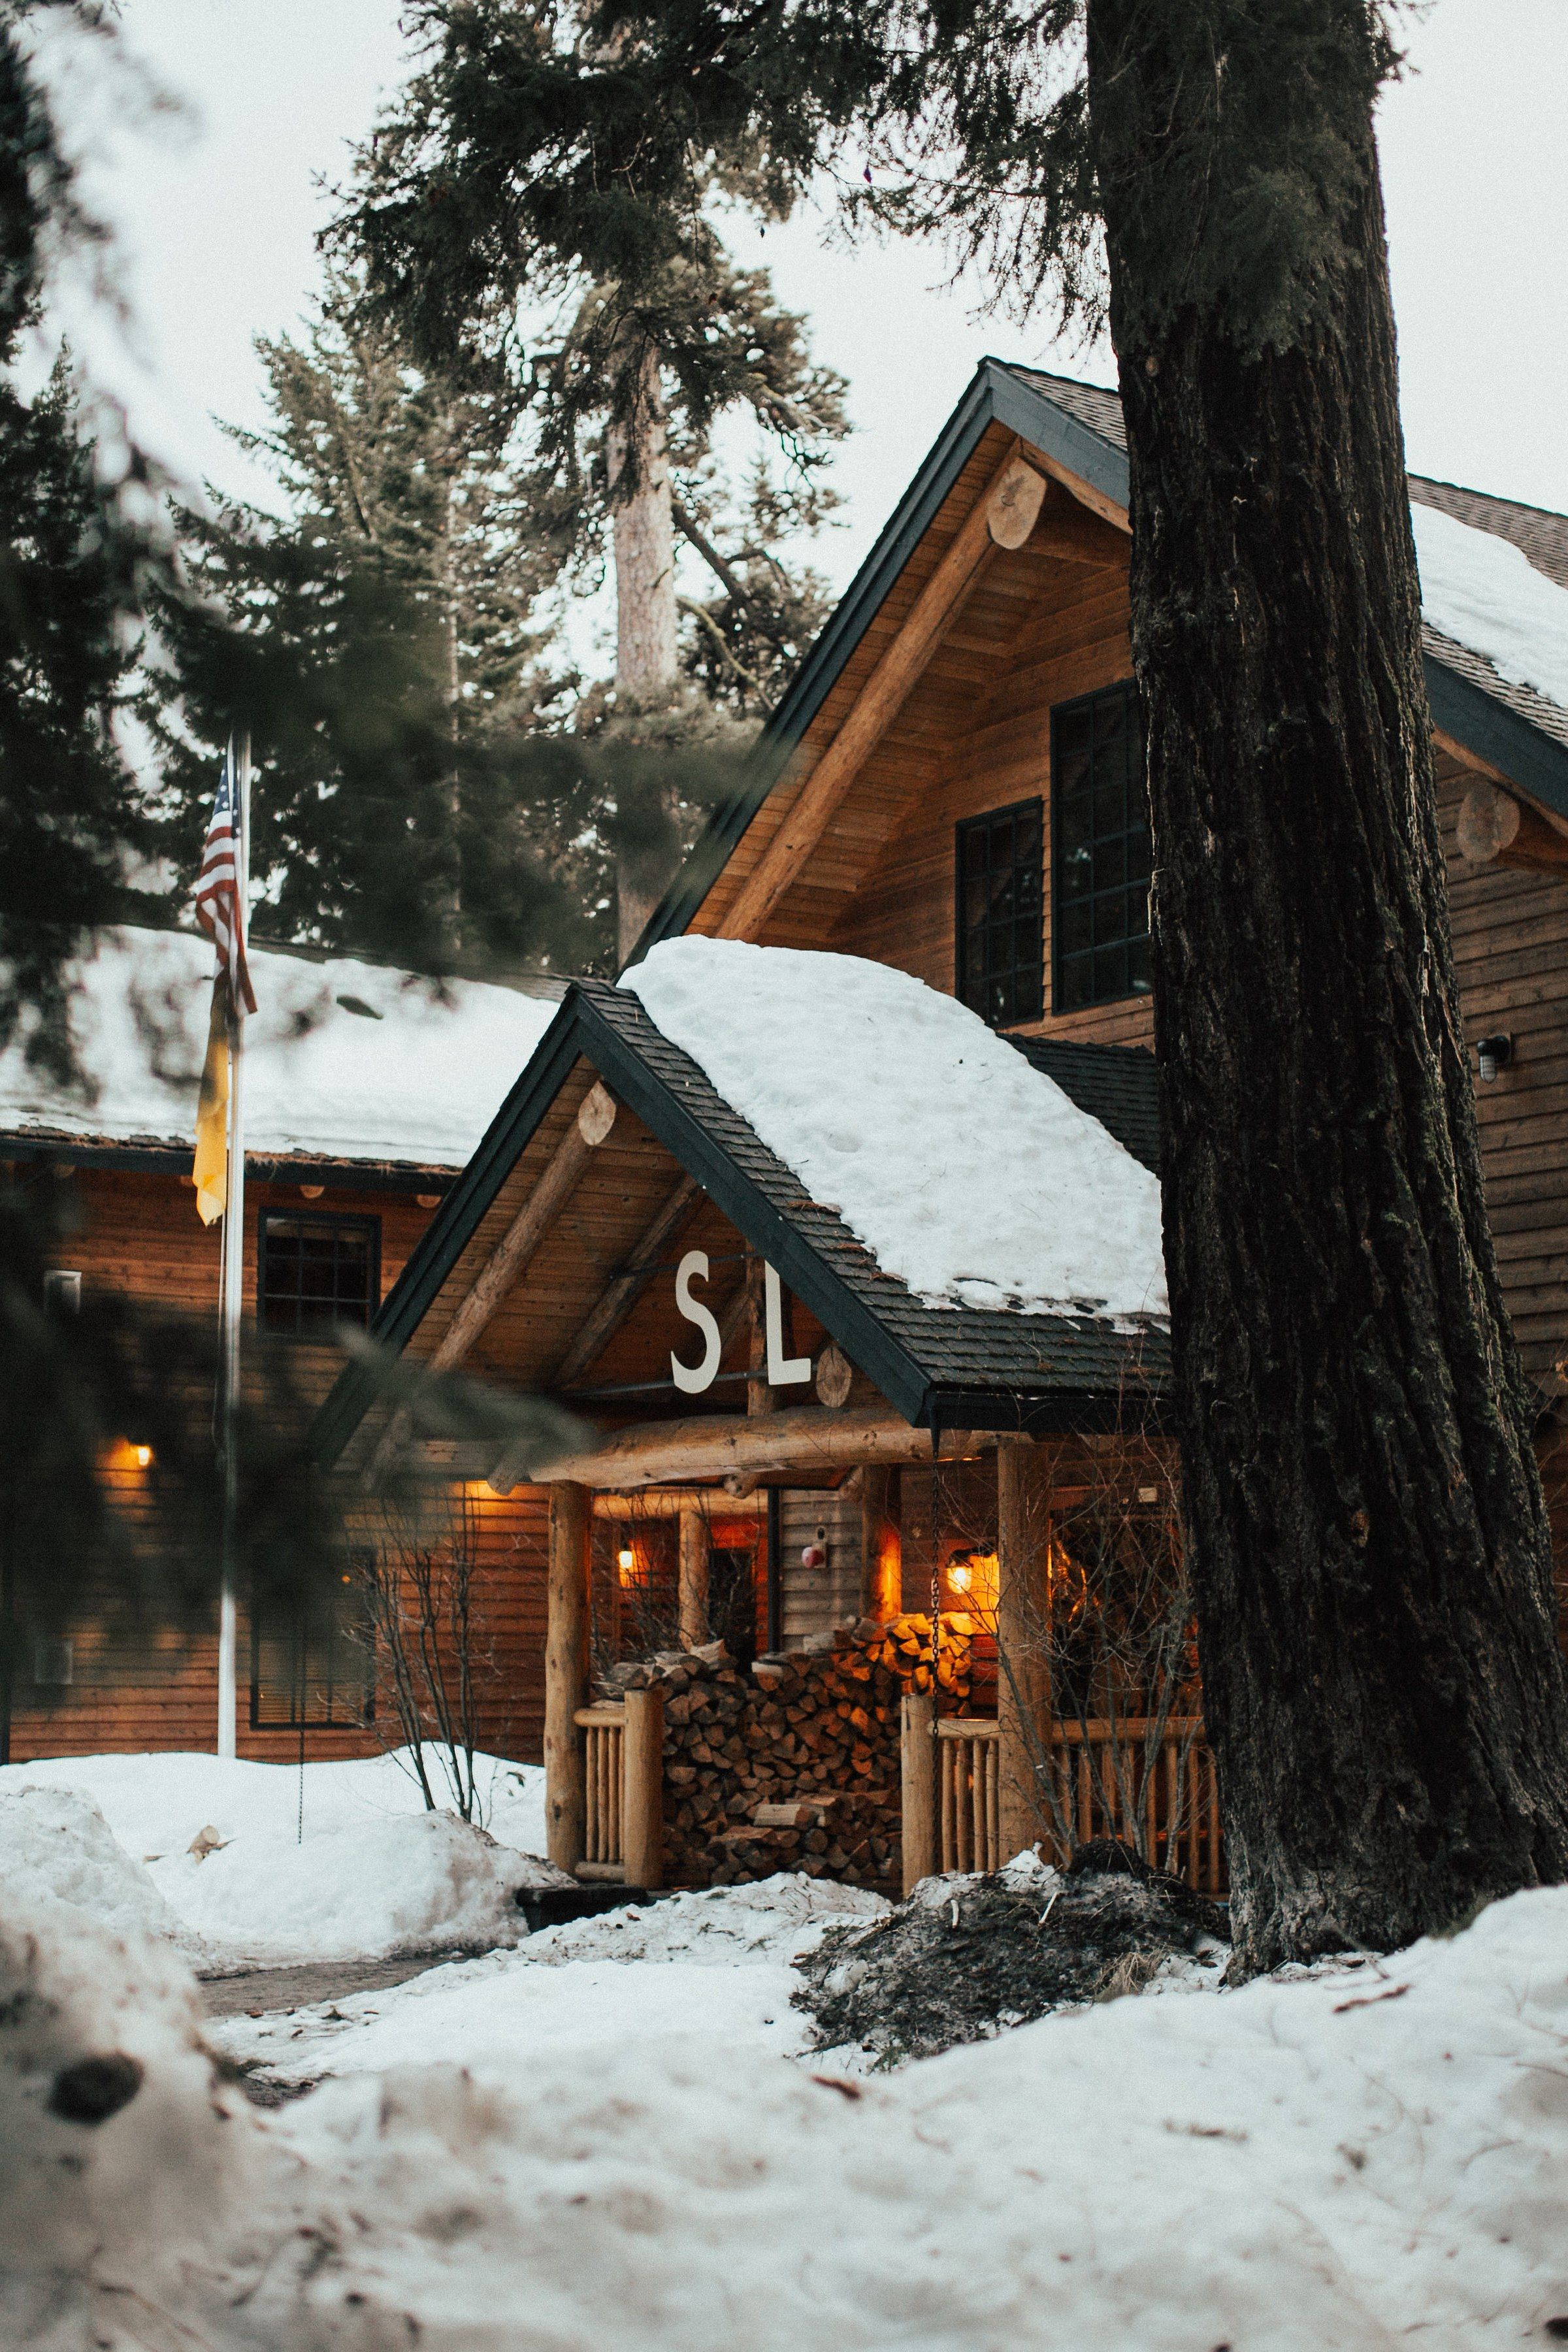 Spend Your Holidays in One of These Cozy Retreats